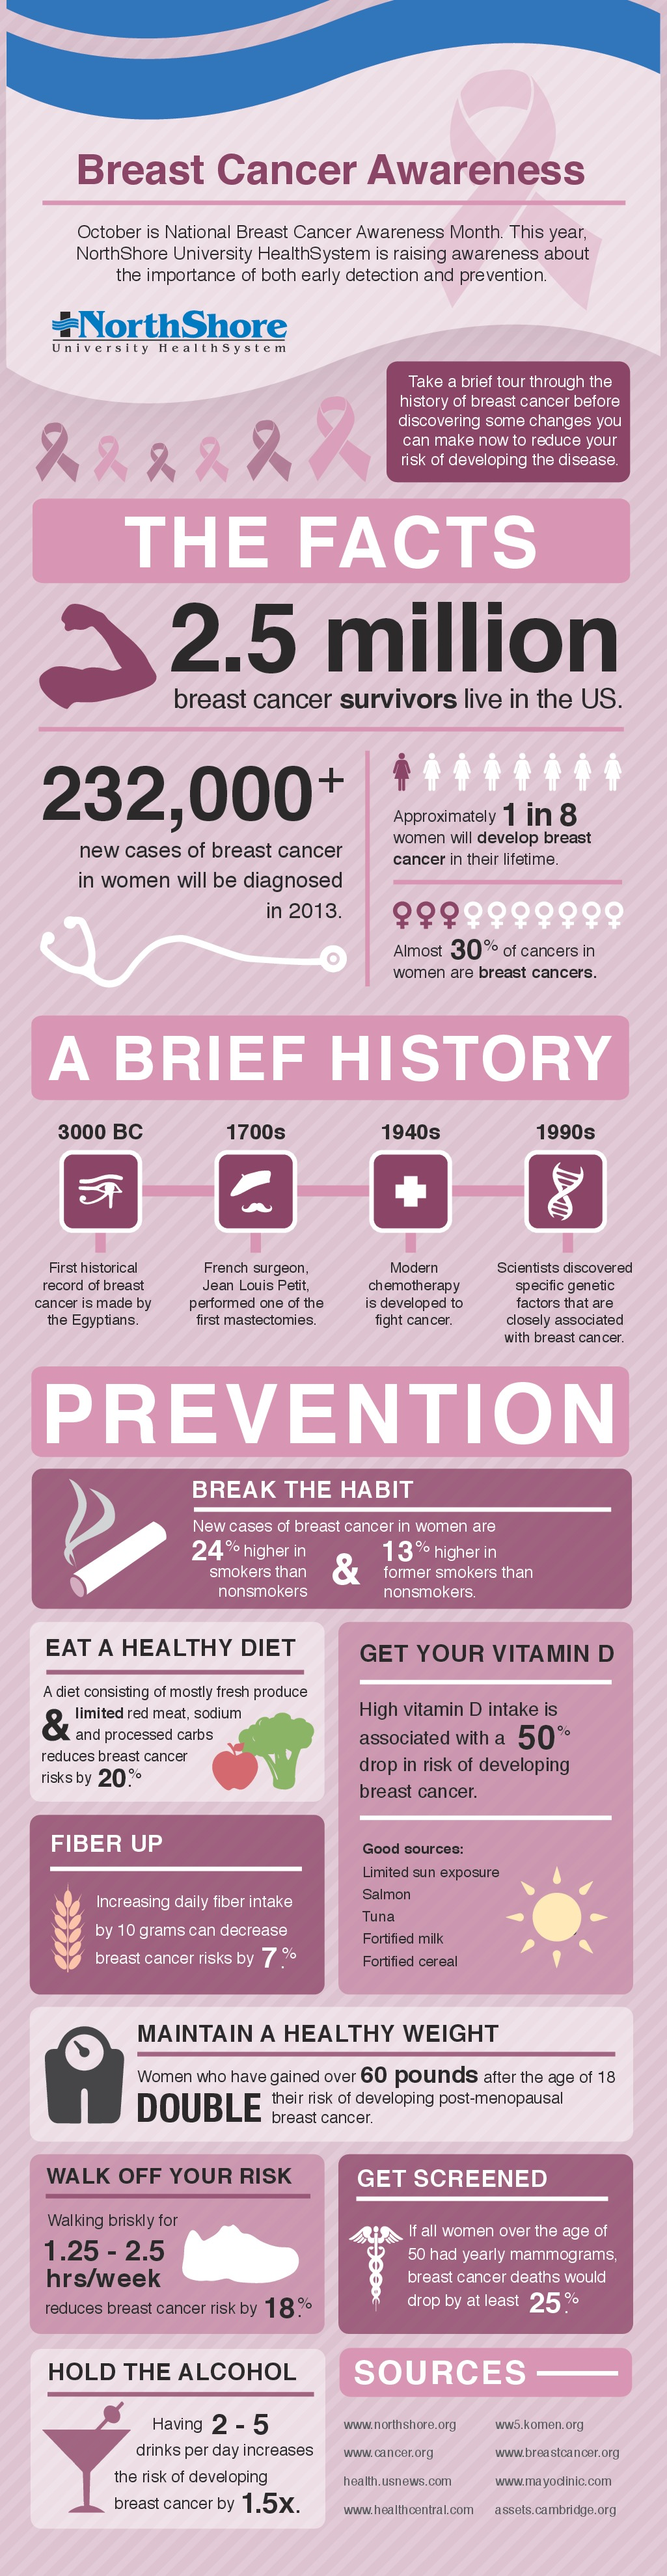 "essay on breast cancer prevention The national cancer institute should be credited as the source and a link to this page included, eg, ""breast cancer prevention (pdq®."